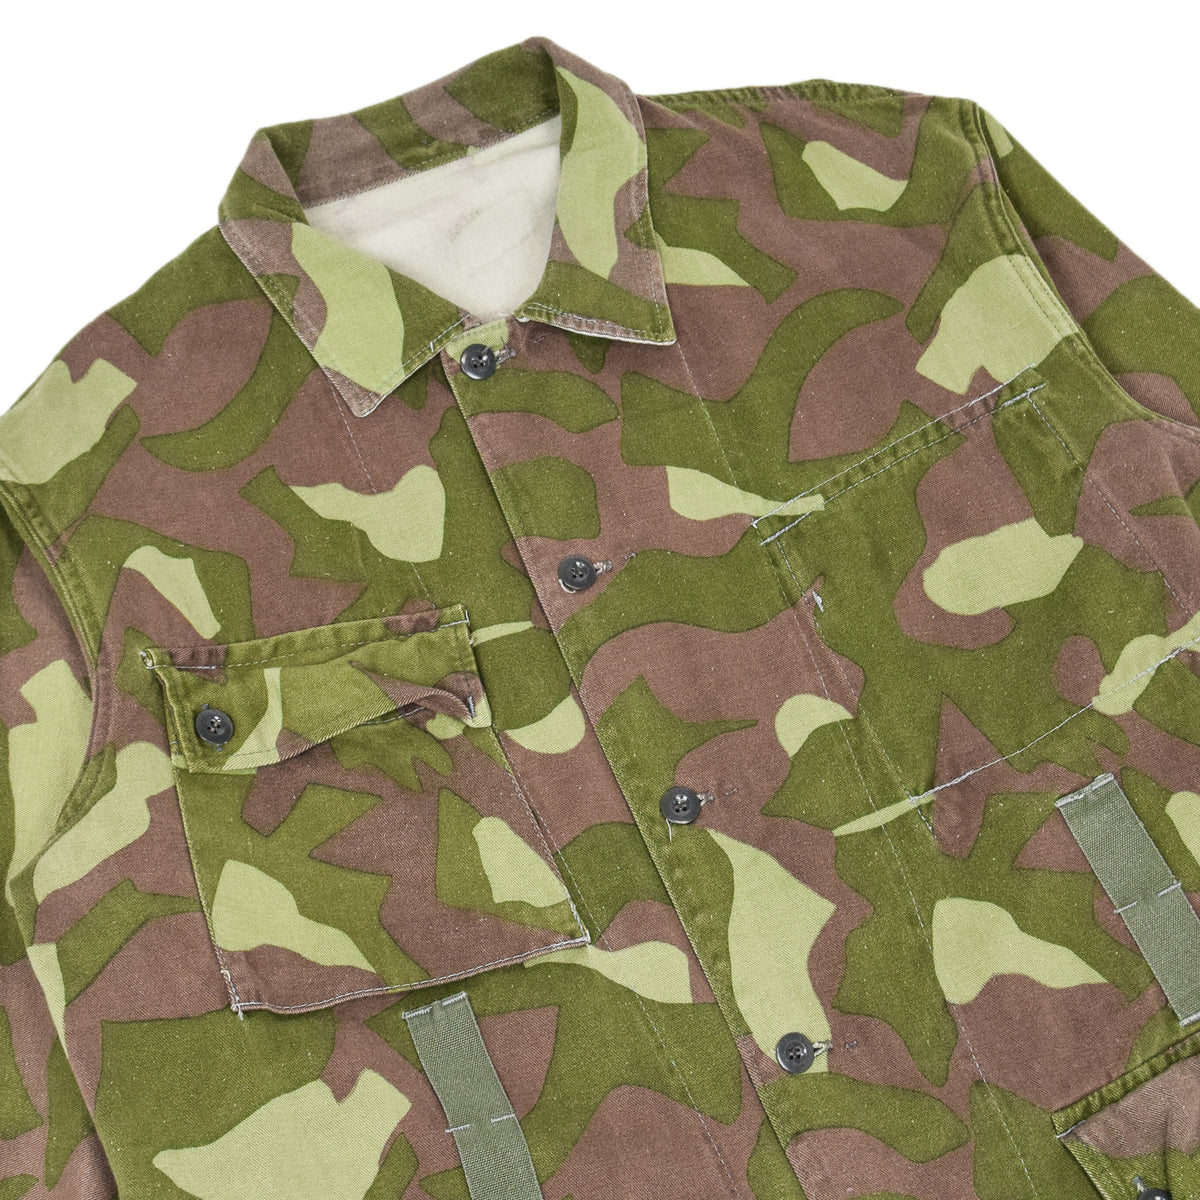 Vintage 70s Military Finnish Army Green Camo Mountain Field Jacket XL chest